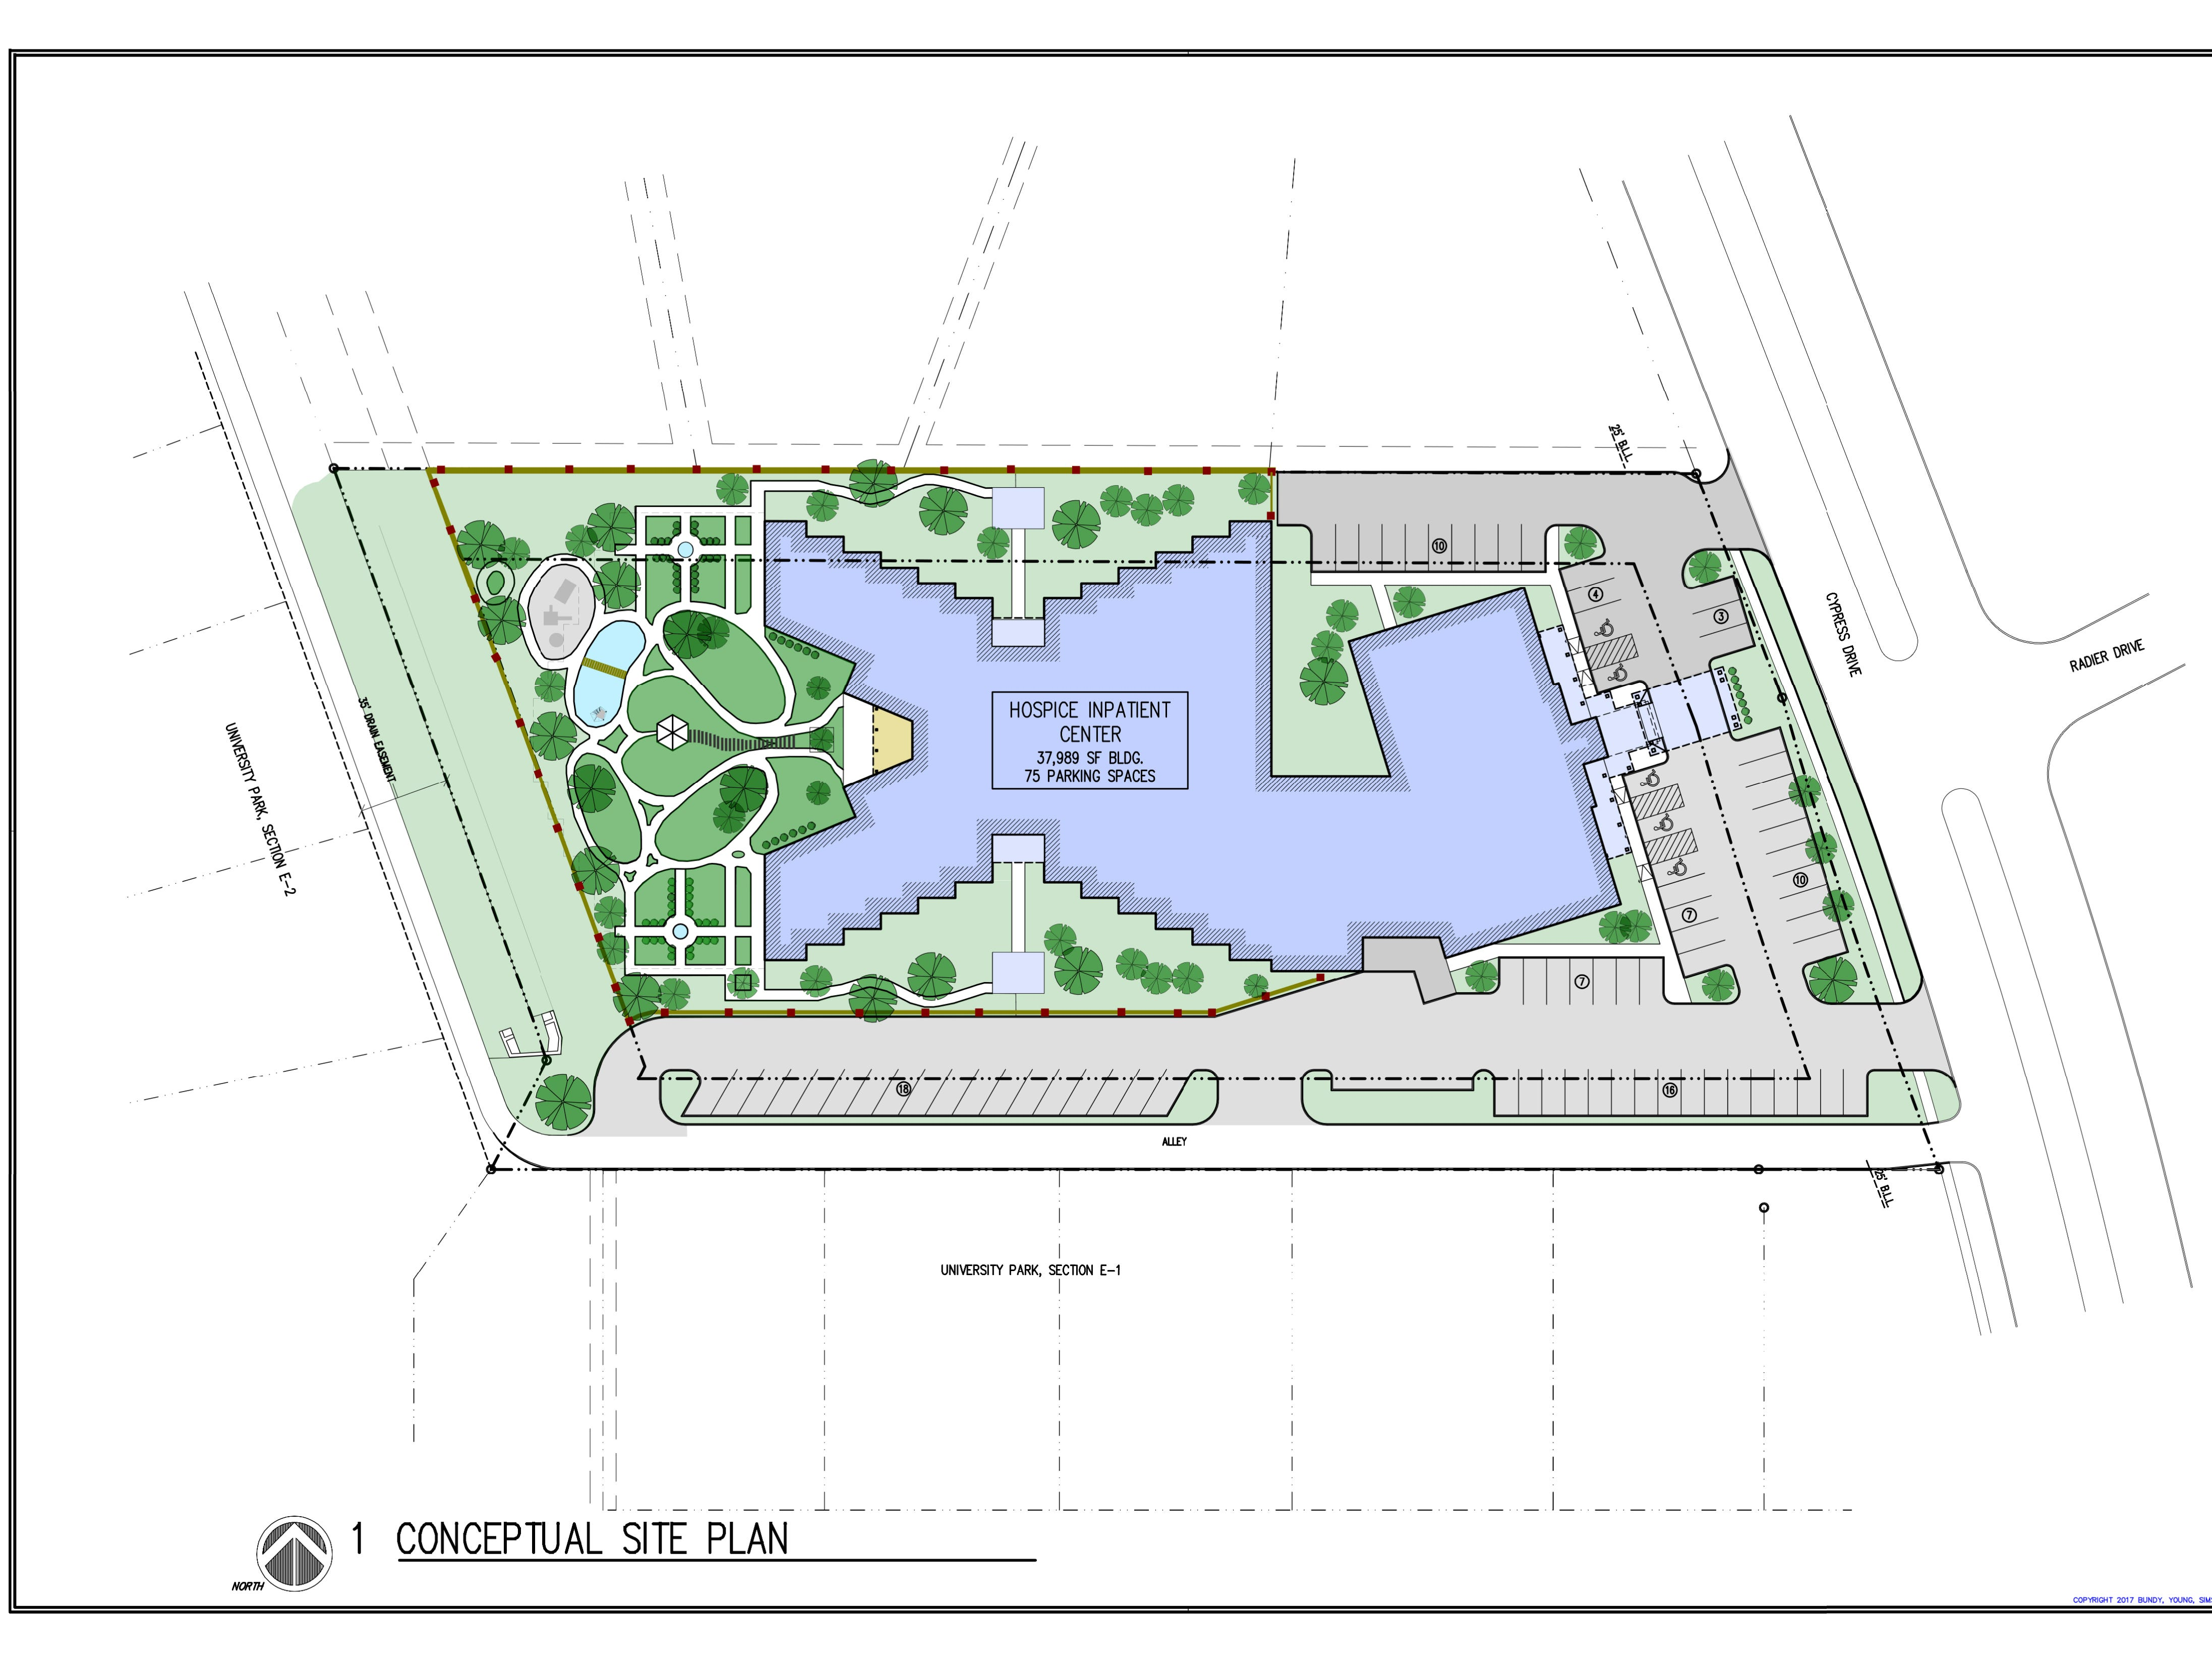 In this conceptual site plan, an overhead view of the planned Hospice of Wichita Falls inpatient project shows how the 38,000-square-foot facility will fill the land off Cypress Avenue.